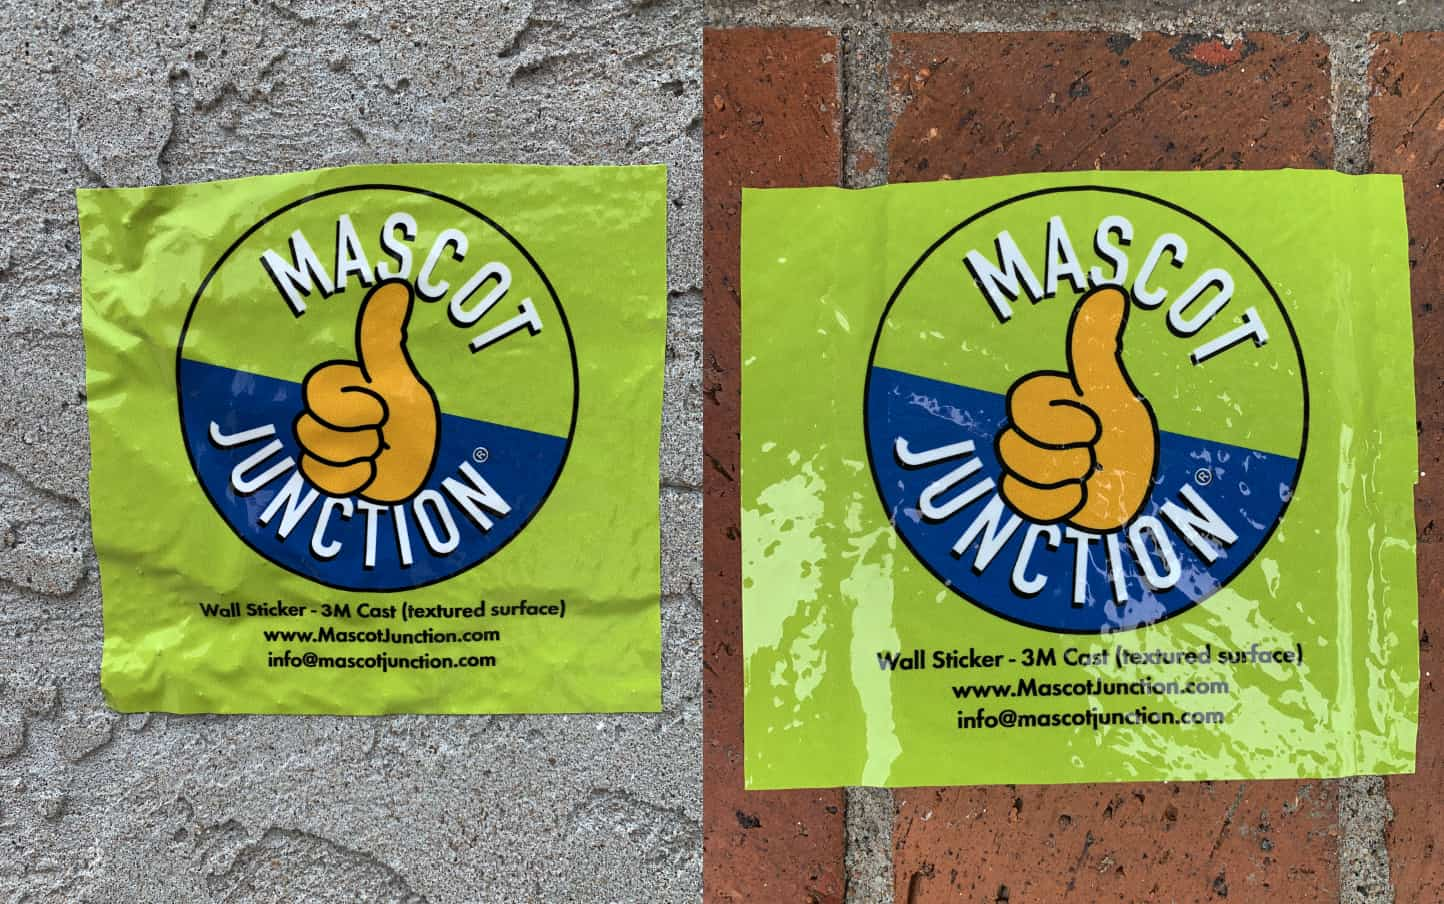 Mega Stickers will adhere to textured or smooth surfaces, and leave no residue when removed.